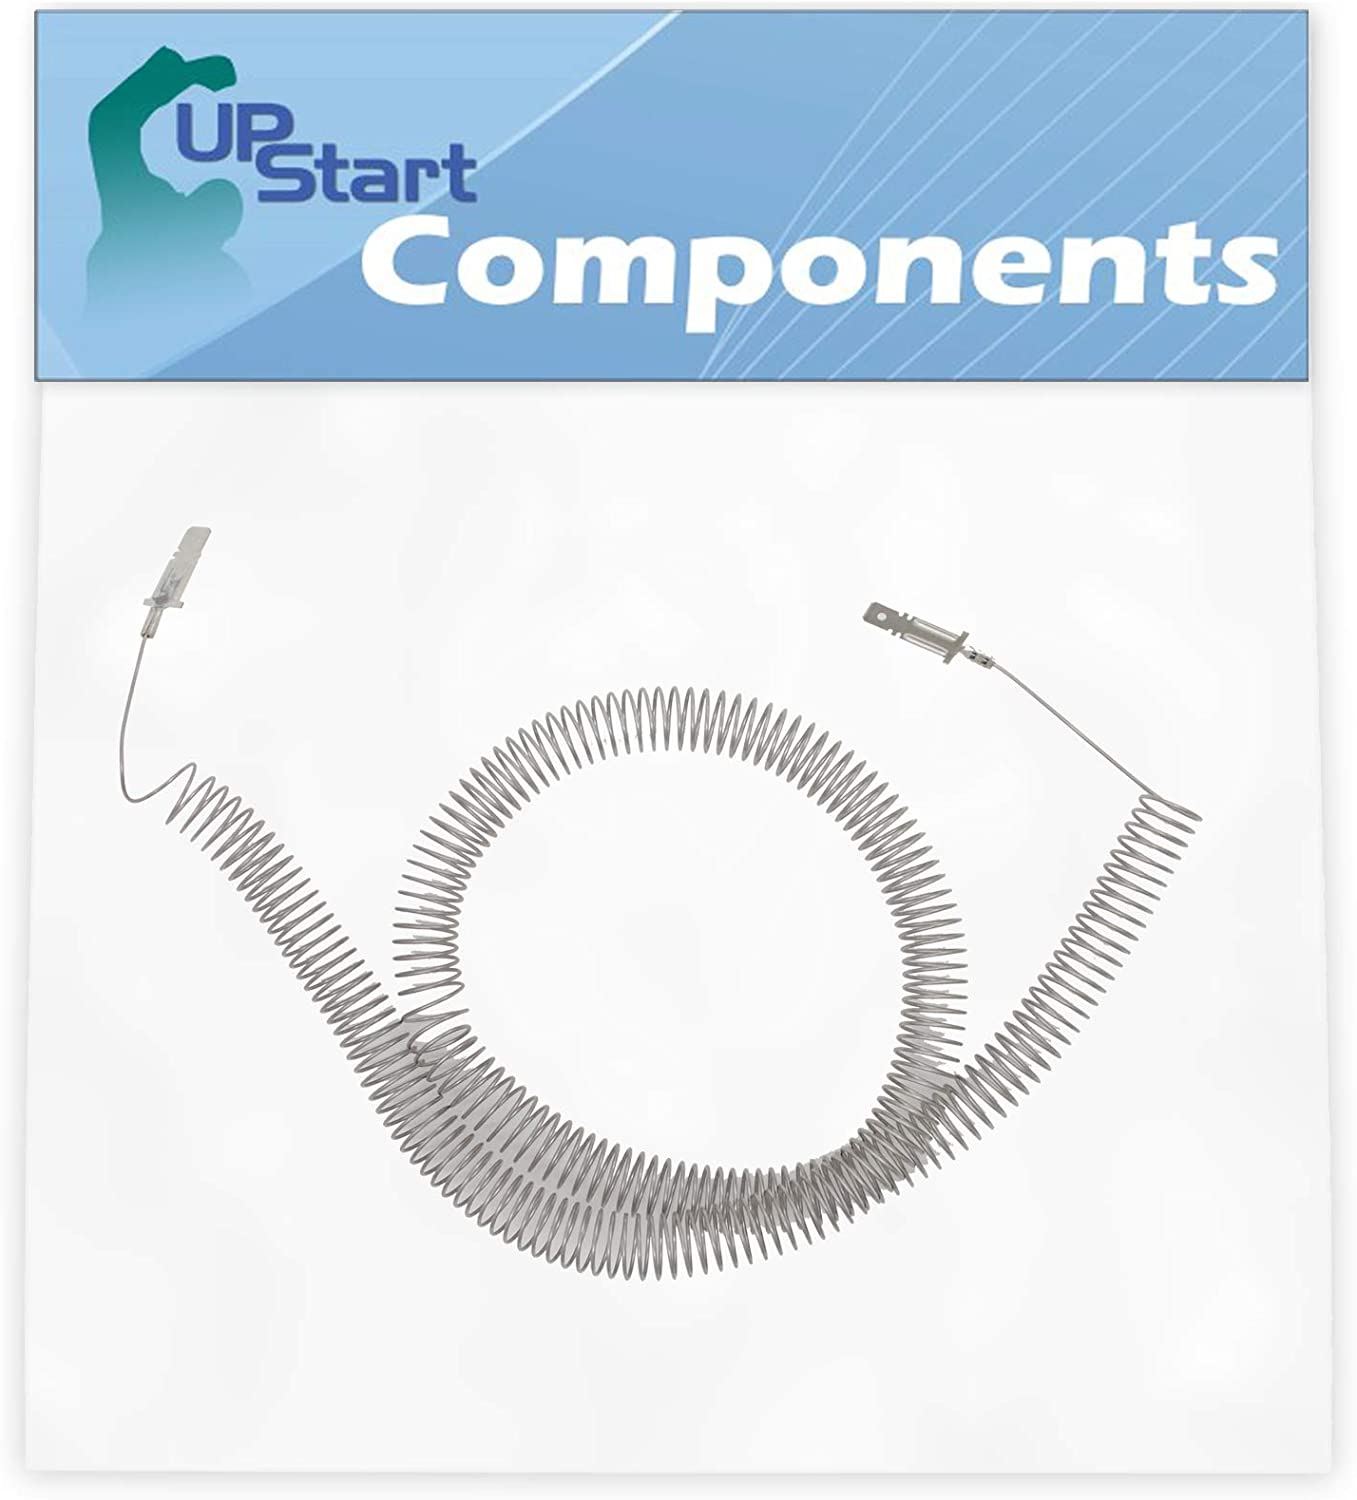 5300622034 Dryer Heating Element Coil for Frigidaire & Kenmore Dryers. Compatible 5300622034 Heater Element Coil for Part Number 5300622034, AP2135128, 351, AH451032, EA451032, PS451032